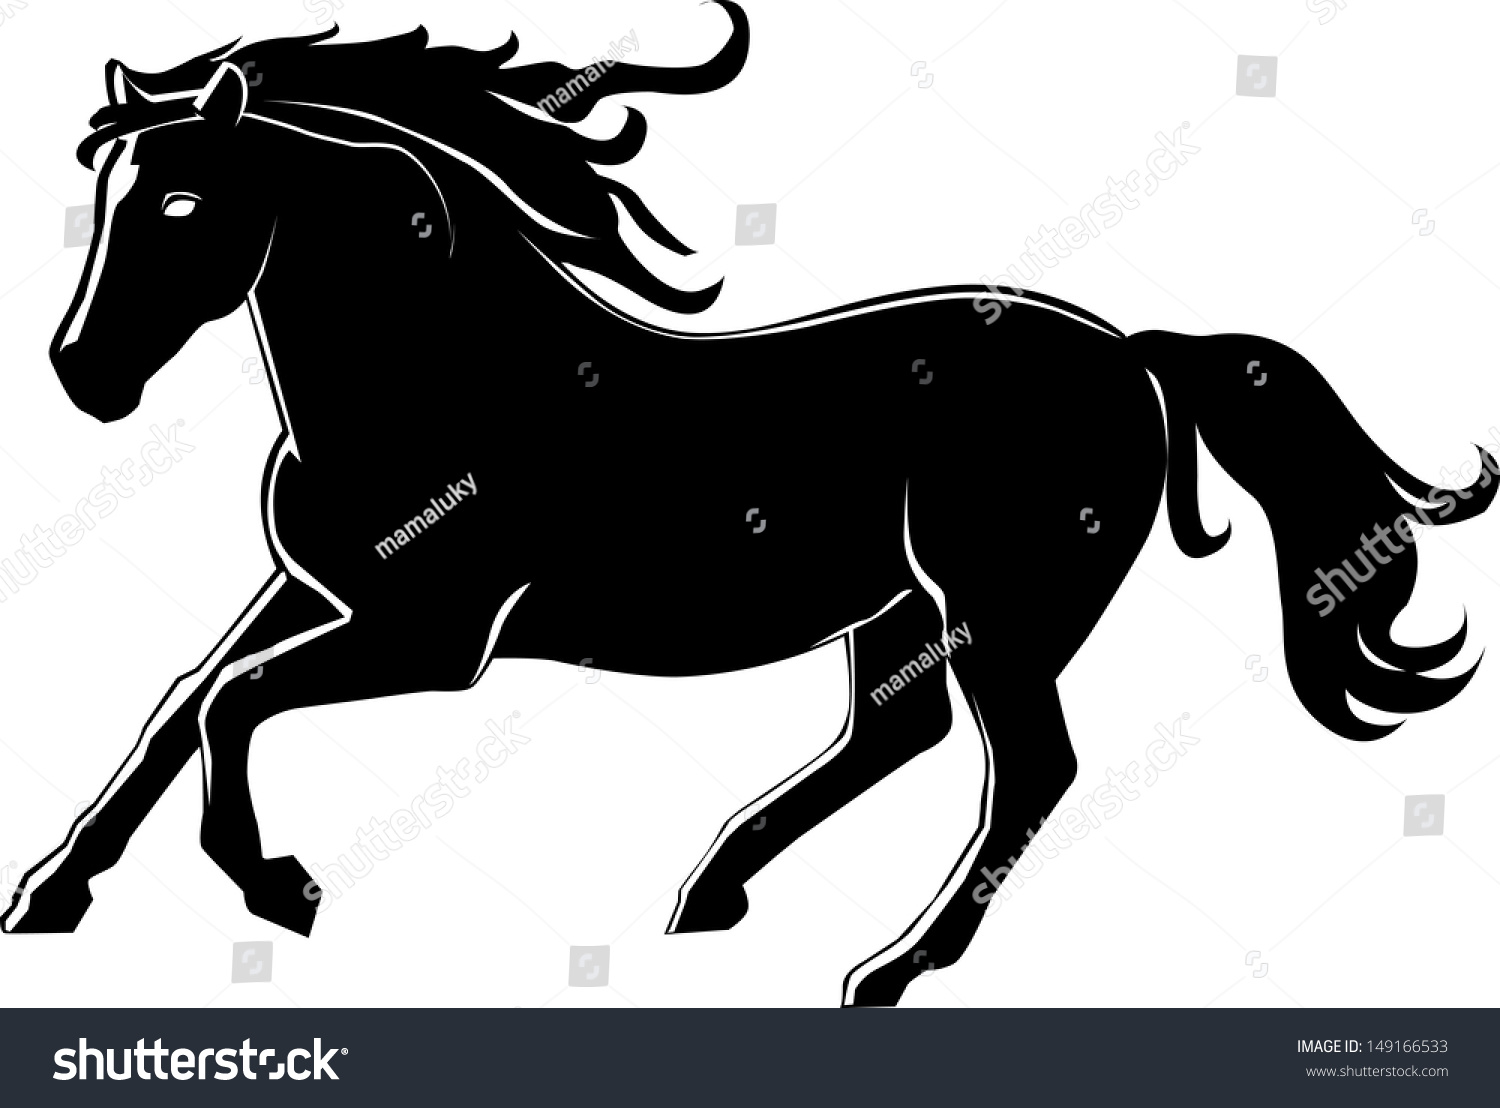 Vector Illustration Running Horse Black Horse Stock Vector Royalty Free 149166533